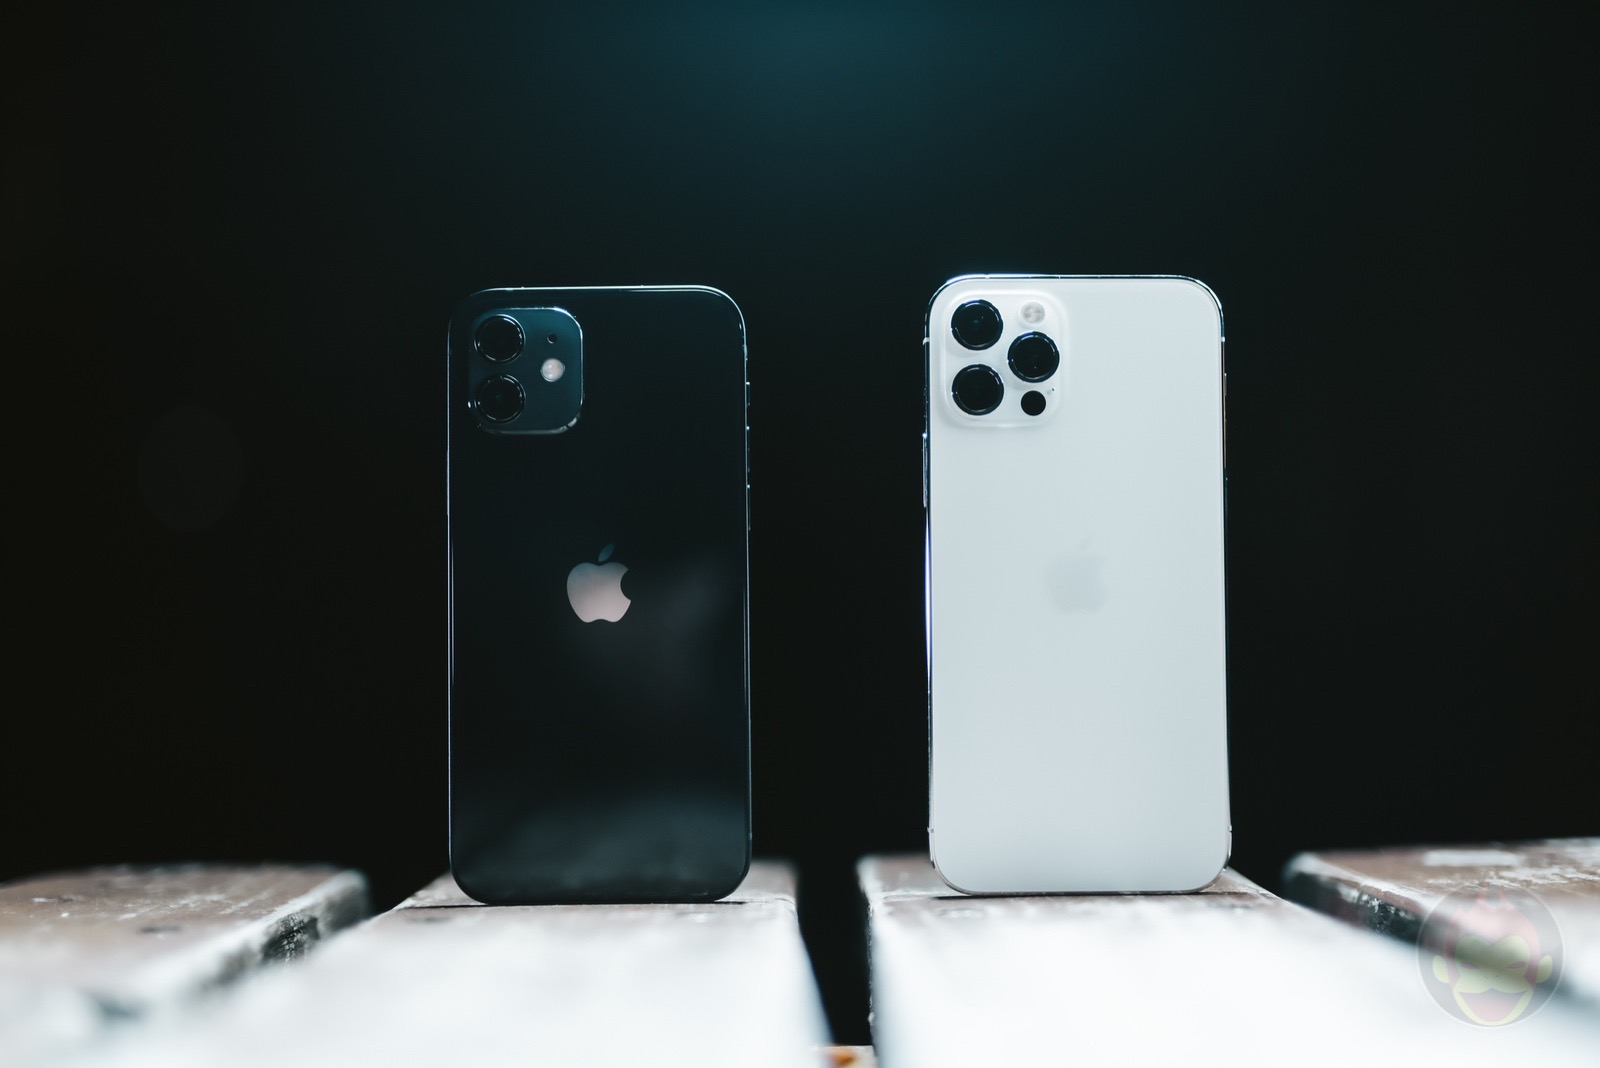 Iphone12 and iphone12pro 01